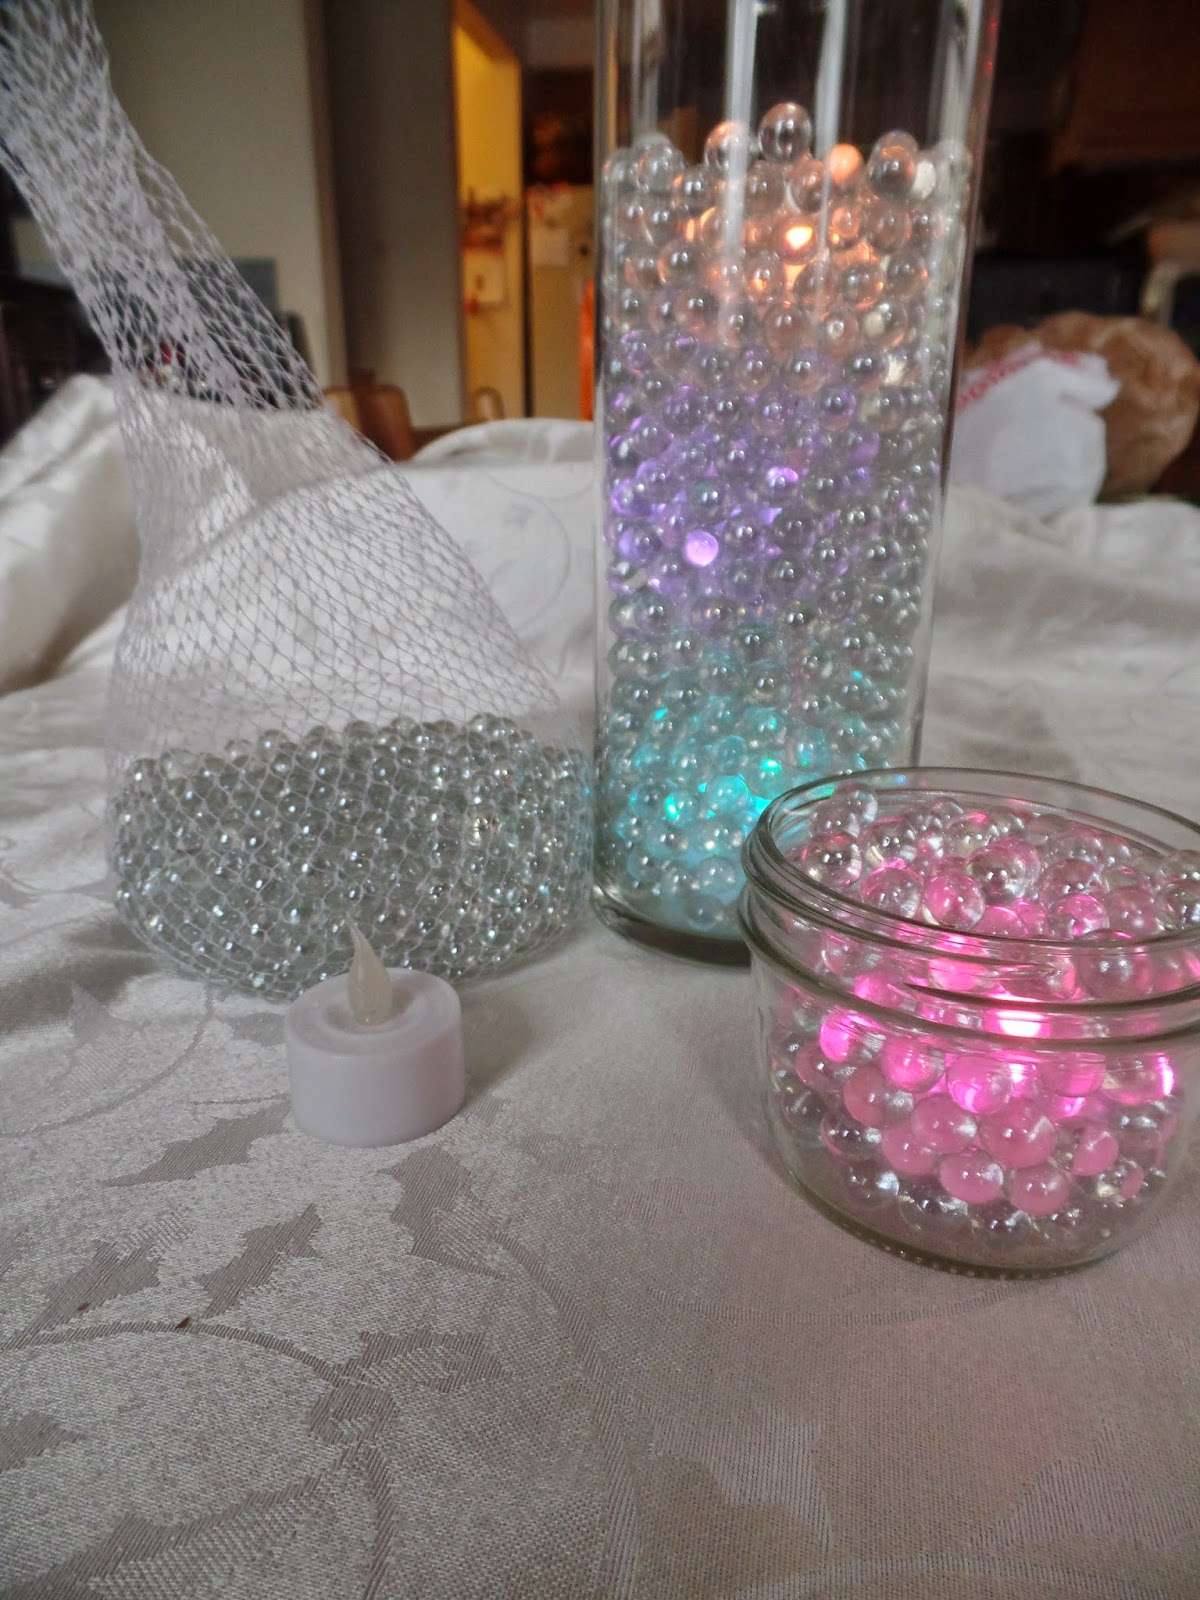 Flat glass marbles crafts - When I Followed Through At The Craft Store I Found Tea Lights That Changed Colors And Tiny Clear Round Marbles That Refracted The Light Even Better Than The